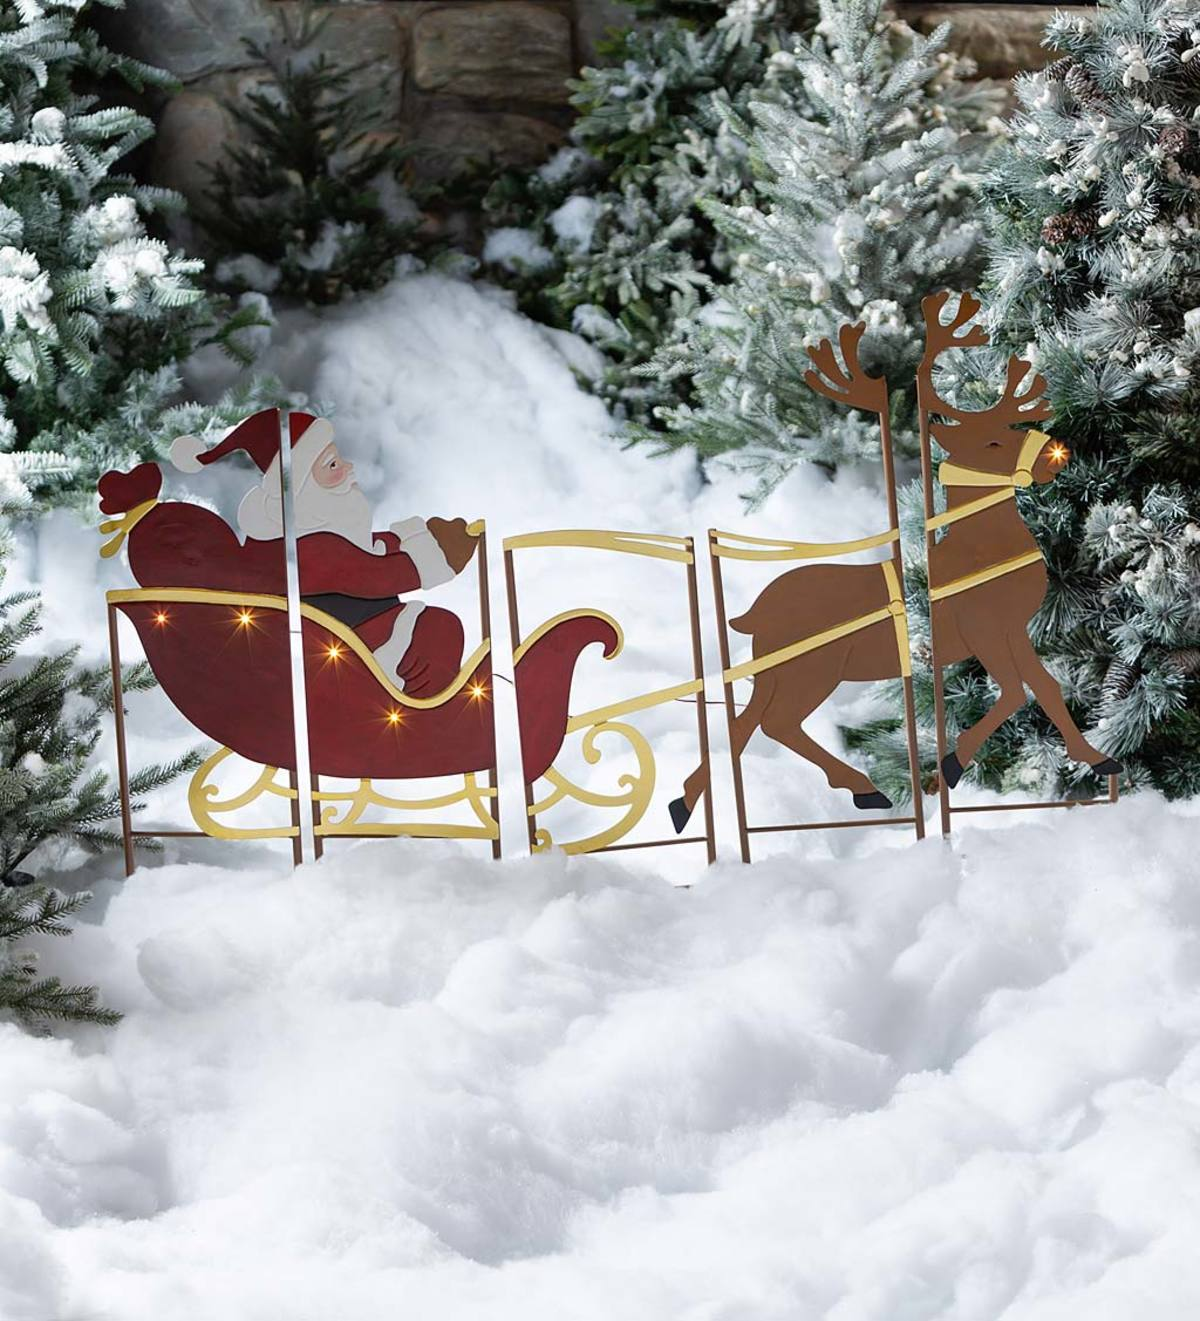 Santa, Sleigh and Reindeer Lighted Landscape Panel Stakes, Set of 5